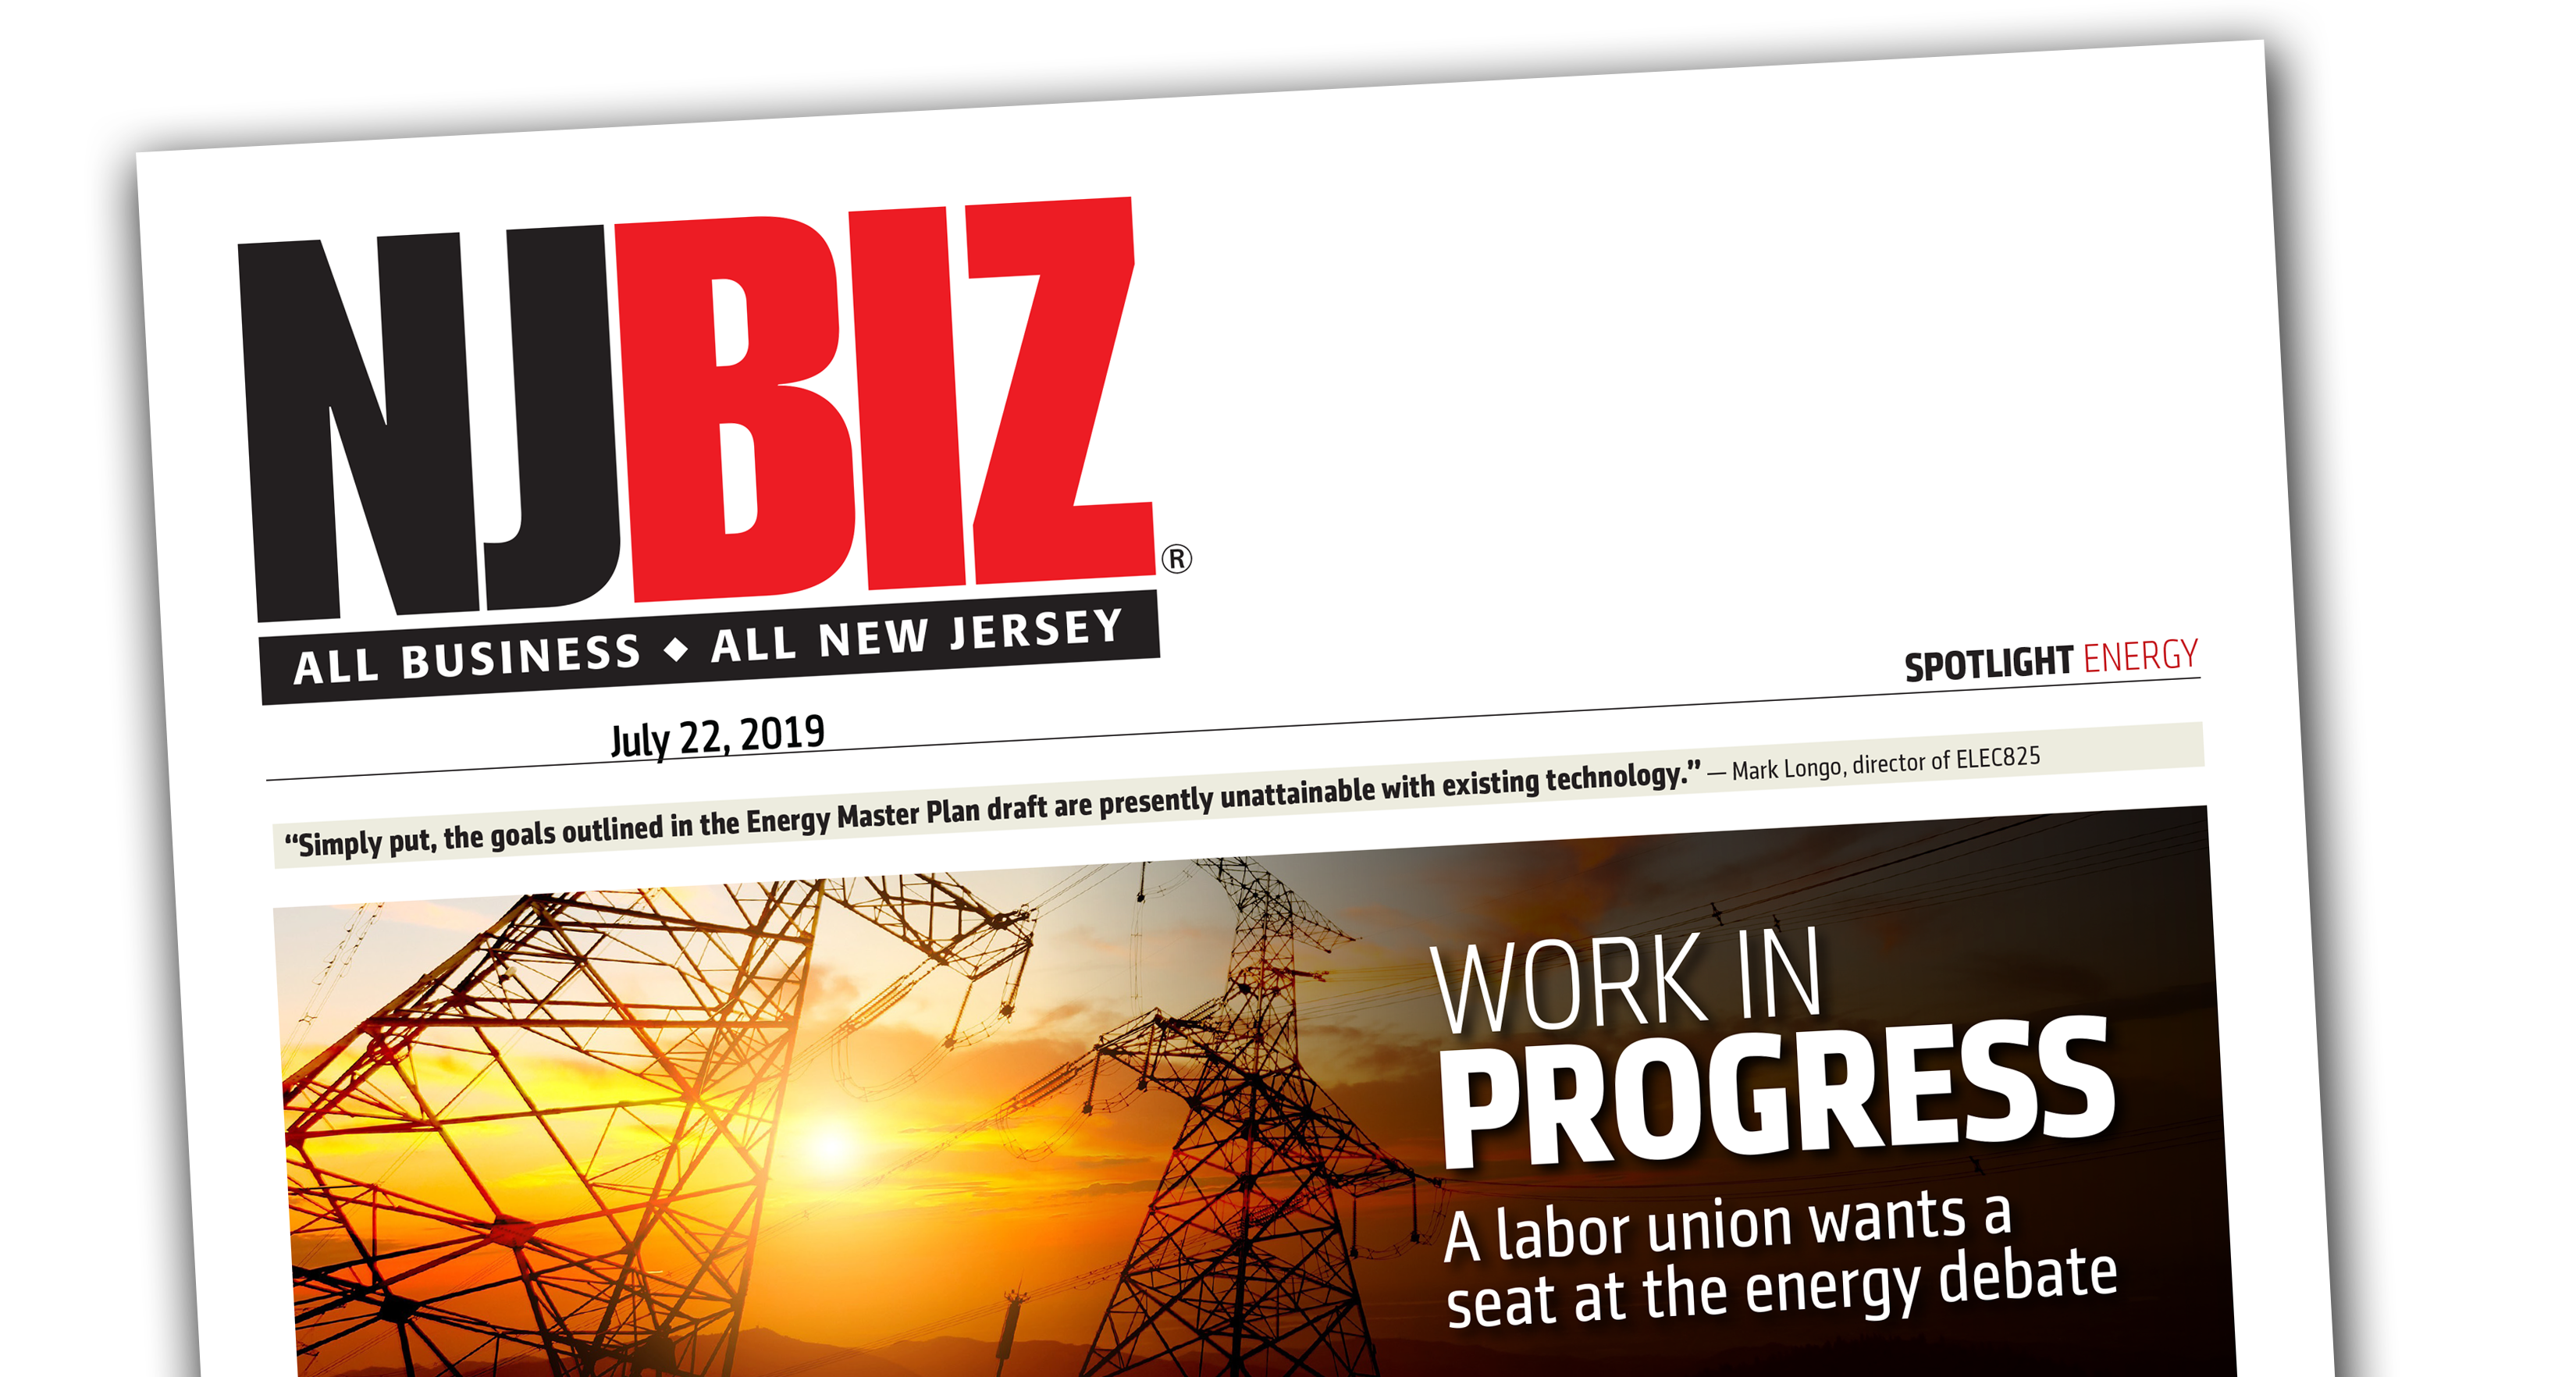 WORK IN PROGRESS: A labor union wants a seat at the energy debate